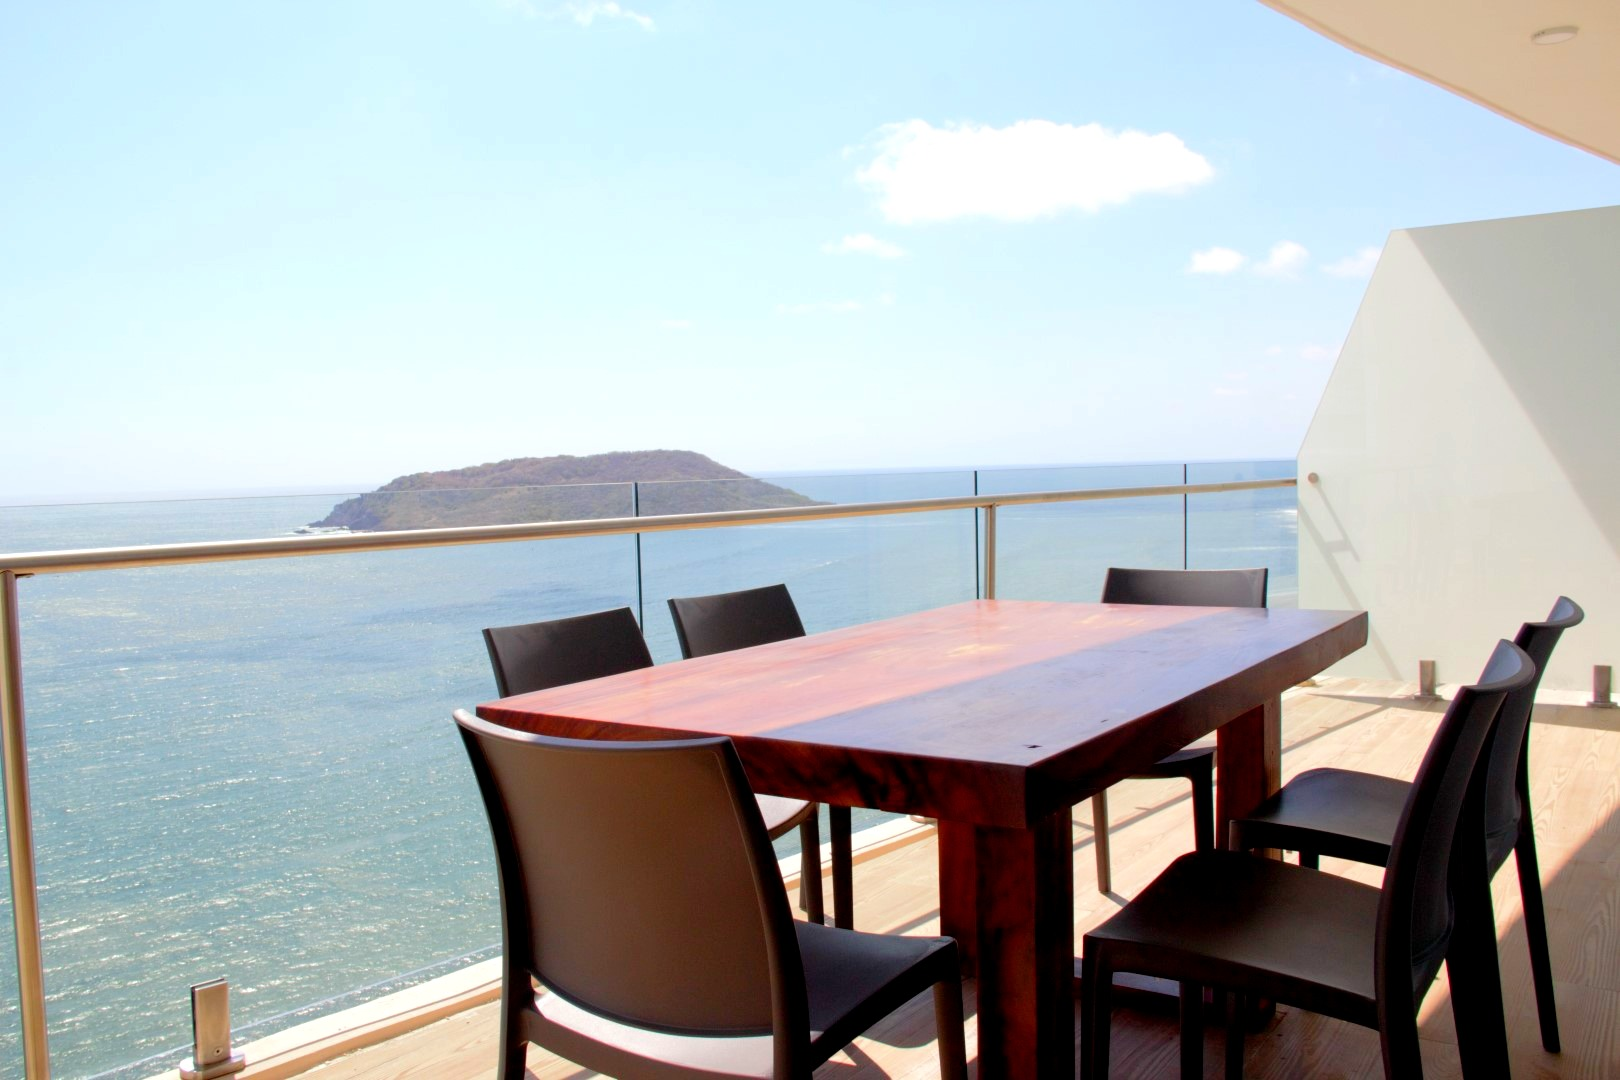 Terrace dining for 6 people.